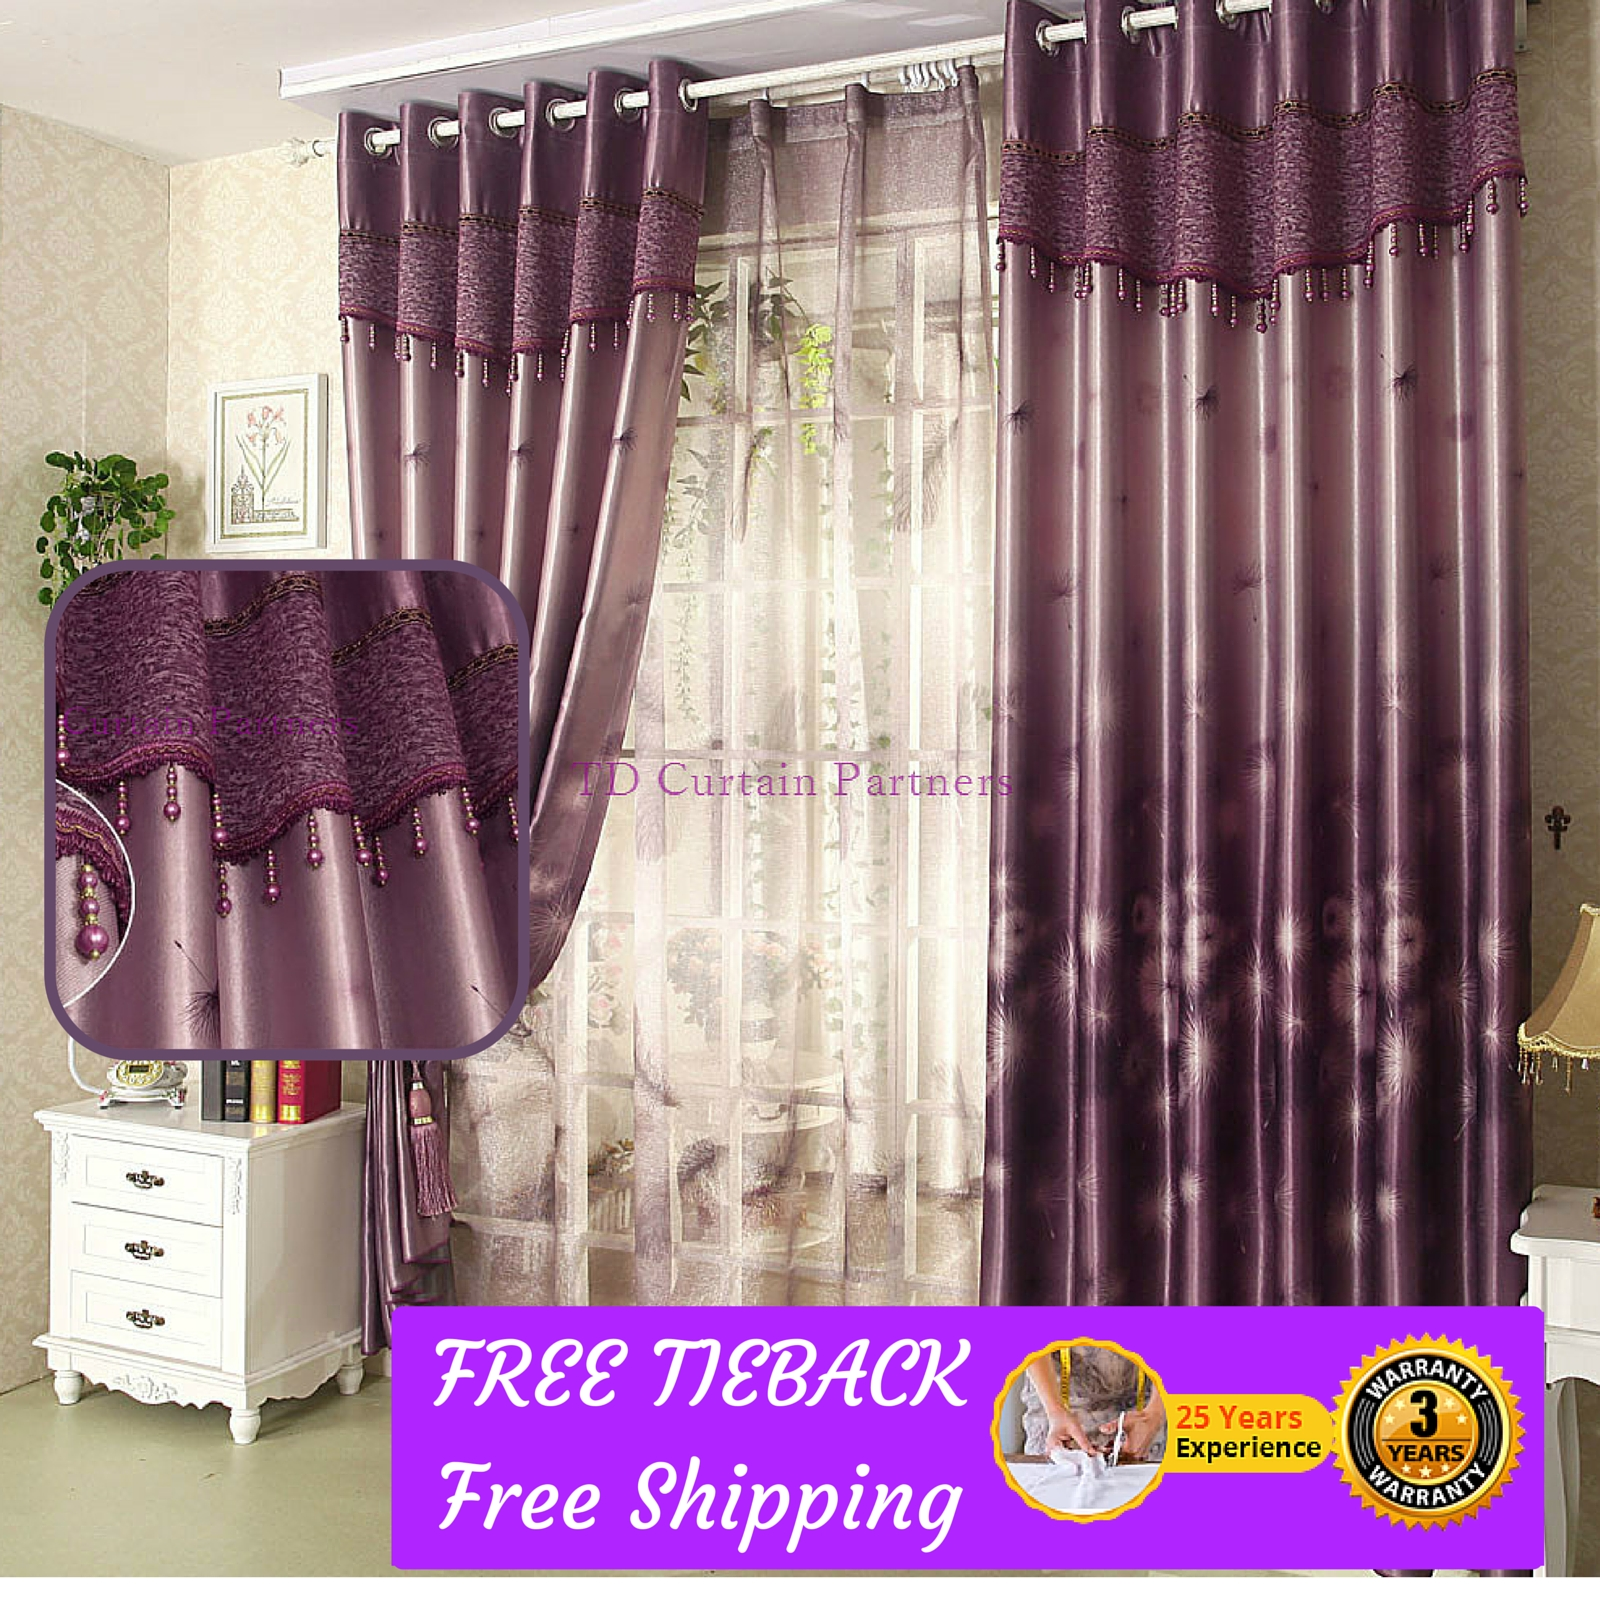 Blackout Purple Bedroom Curtains Fabric Valance Drapessheer Intended For Custom Made Blackout Curtains (Image 2 of 15)